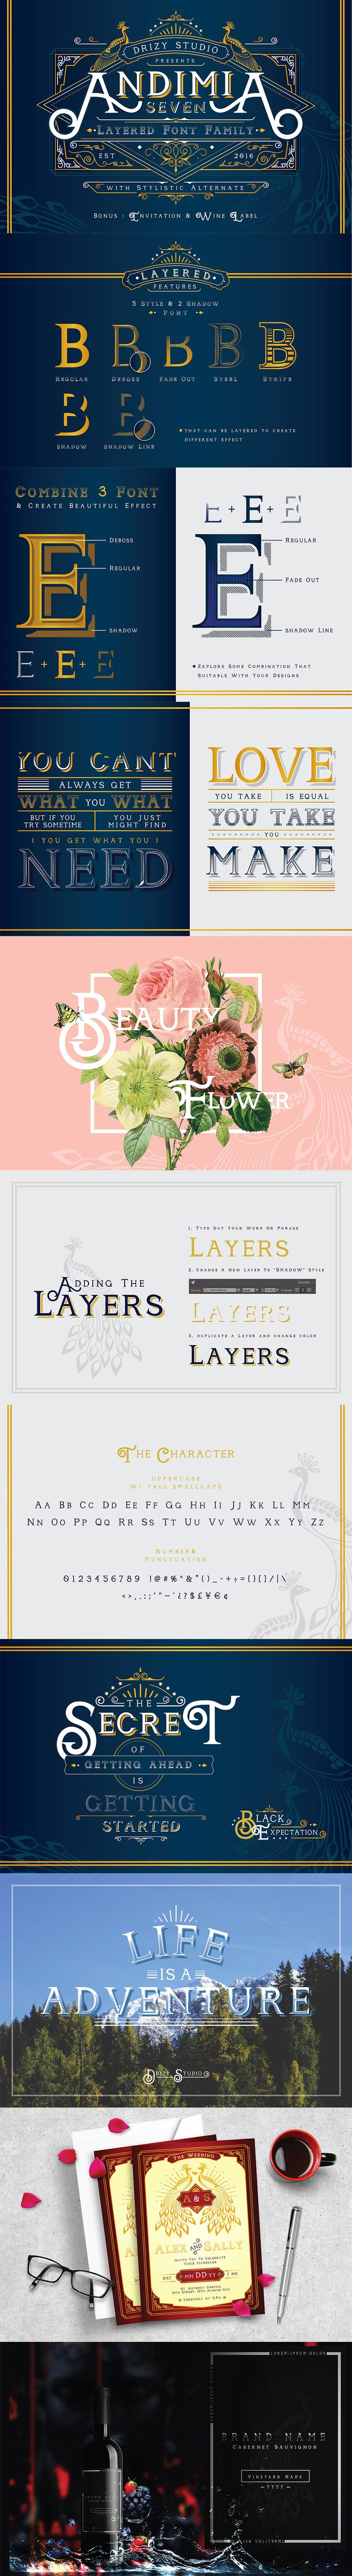 Penguin Book Cover Wedding Invitation Template : Best ideas about classic wedding invitations on